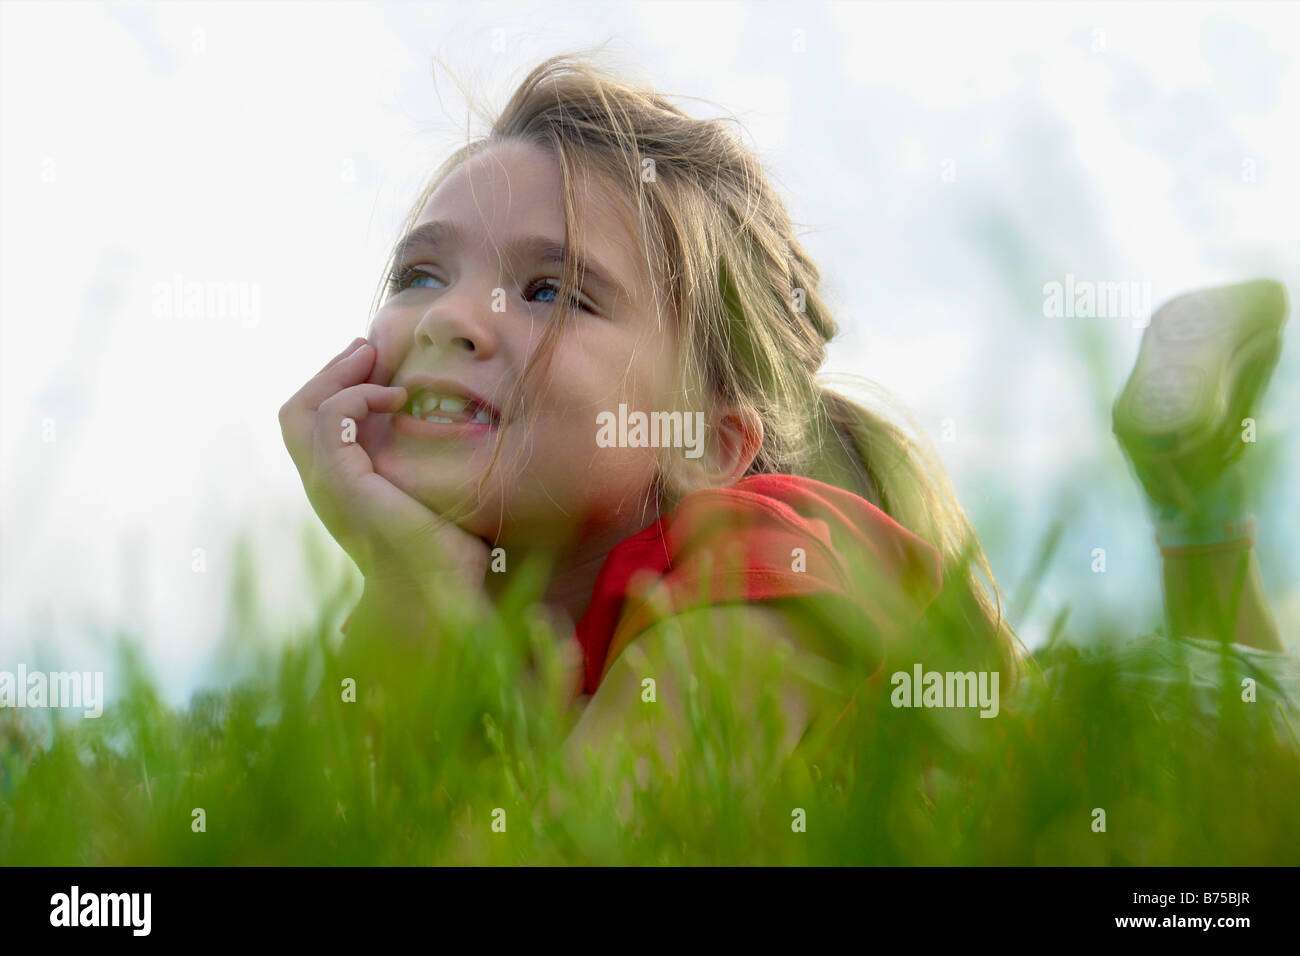 Six year old girl with chin in hands lying on grass, Winnipeg, Canada - Stock Image